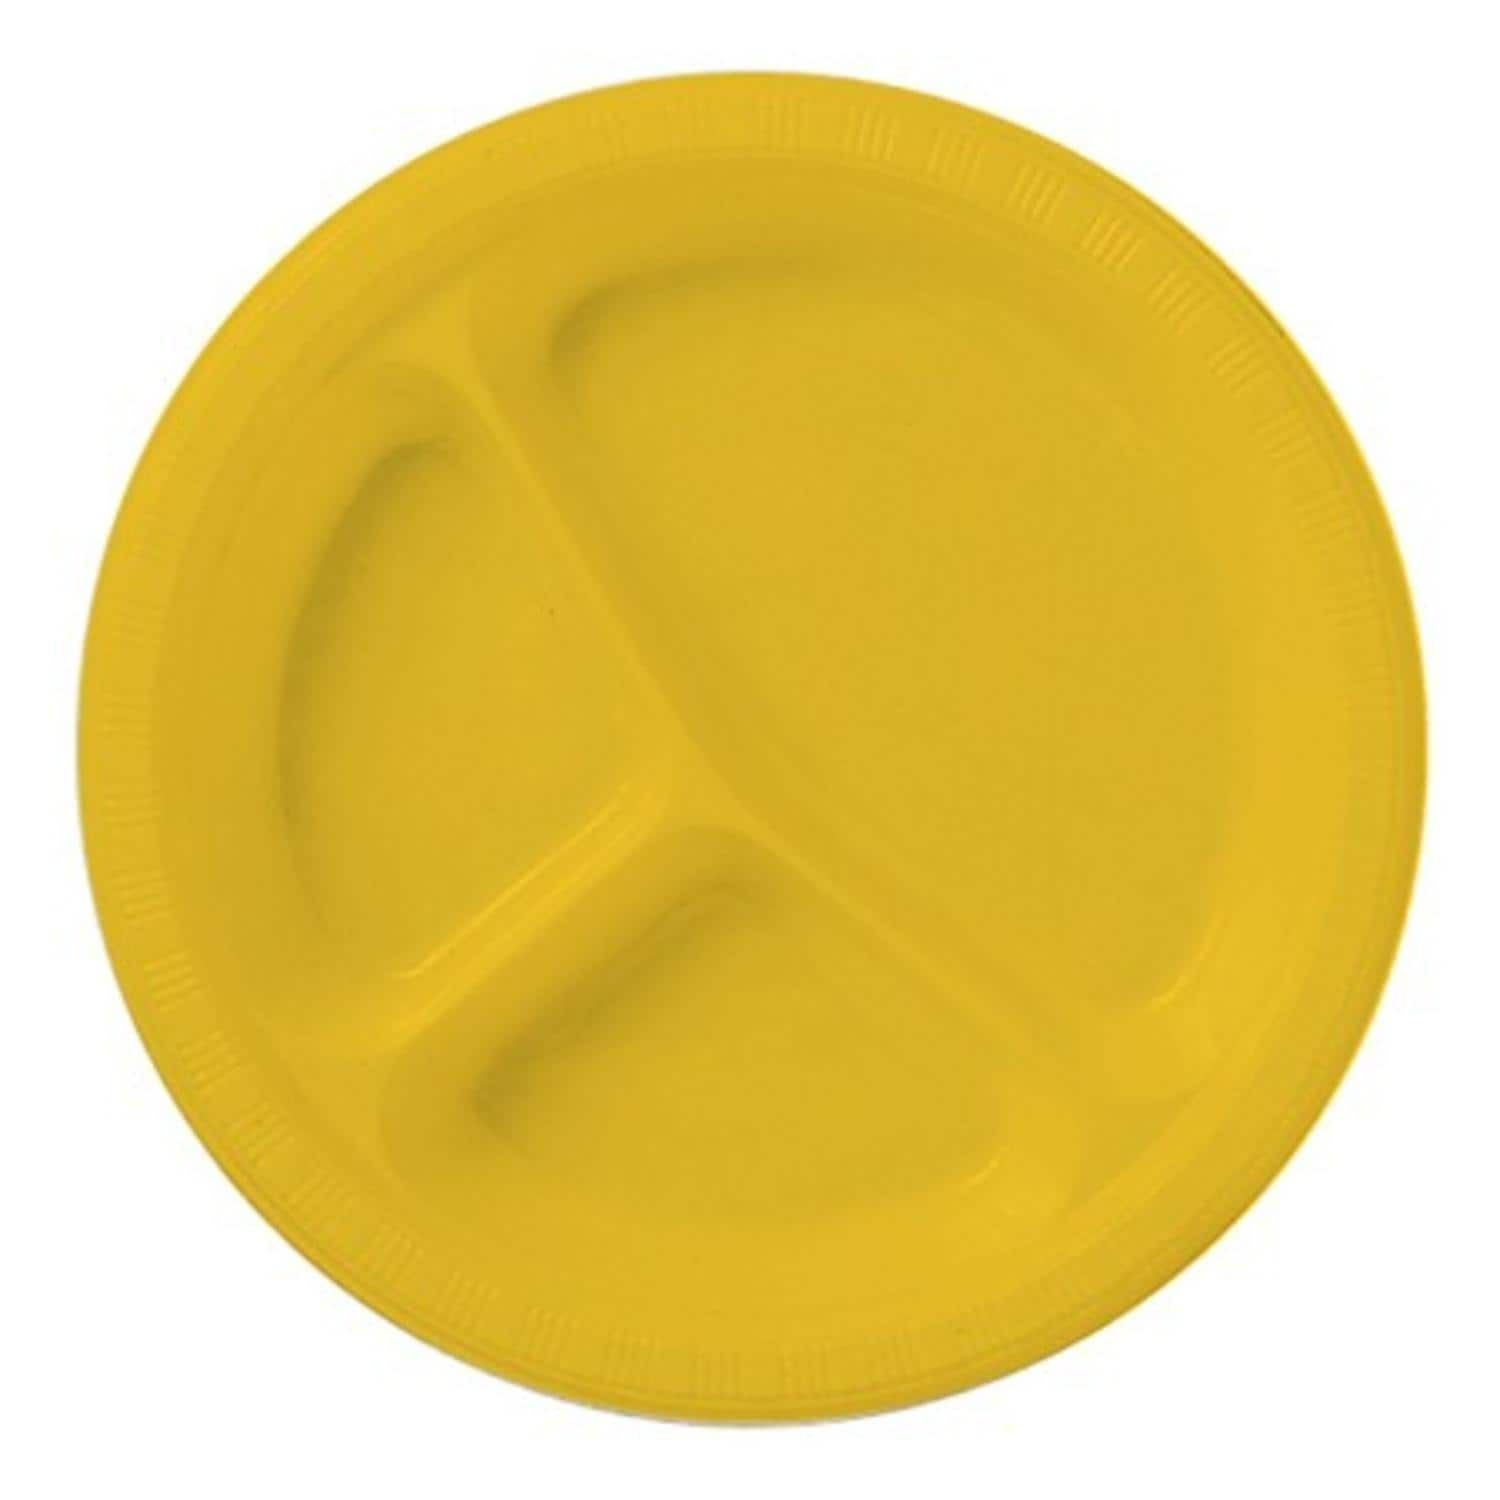 Club Pack of 200 School Bus Yellow Disposable Divided Plastic Party Banquet Dinner Plates 10  sc 1 st  Pinterest & Club Pack of 200 School Bus Yellow Disposable Divided Plastic Party ...